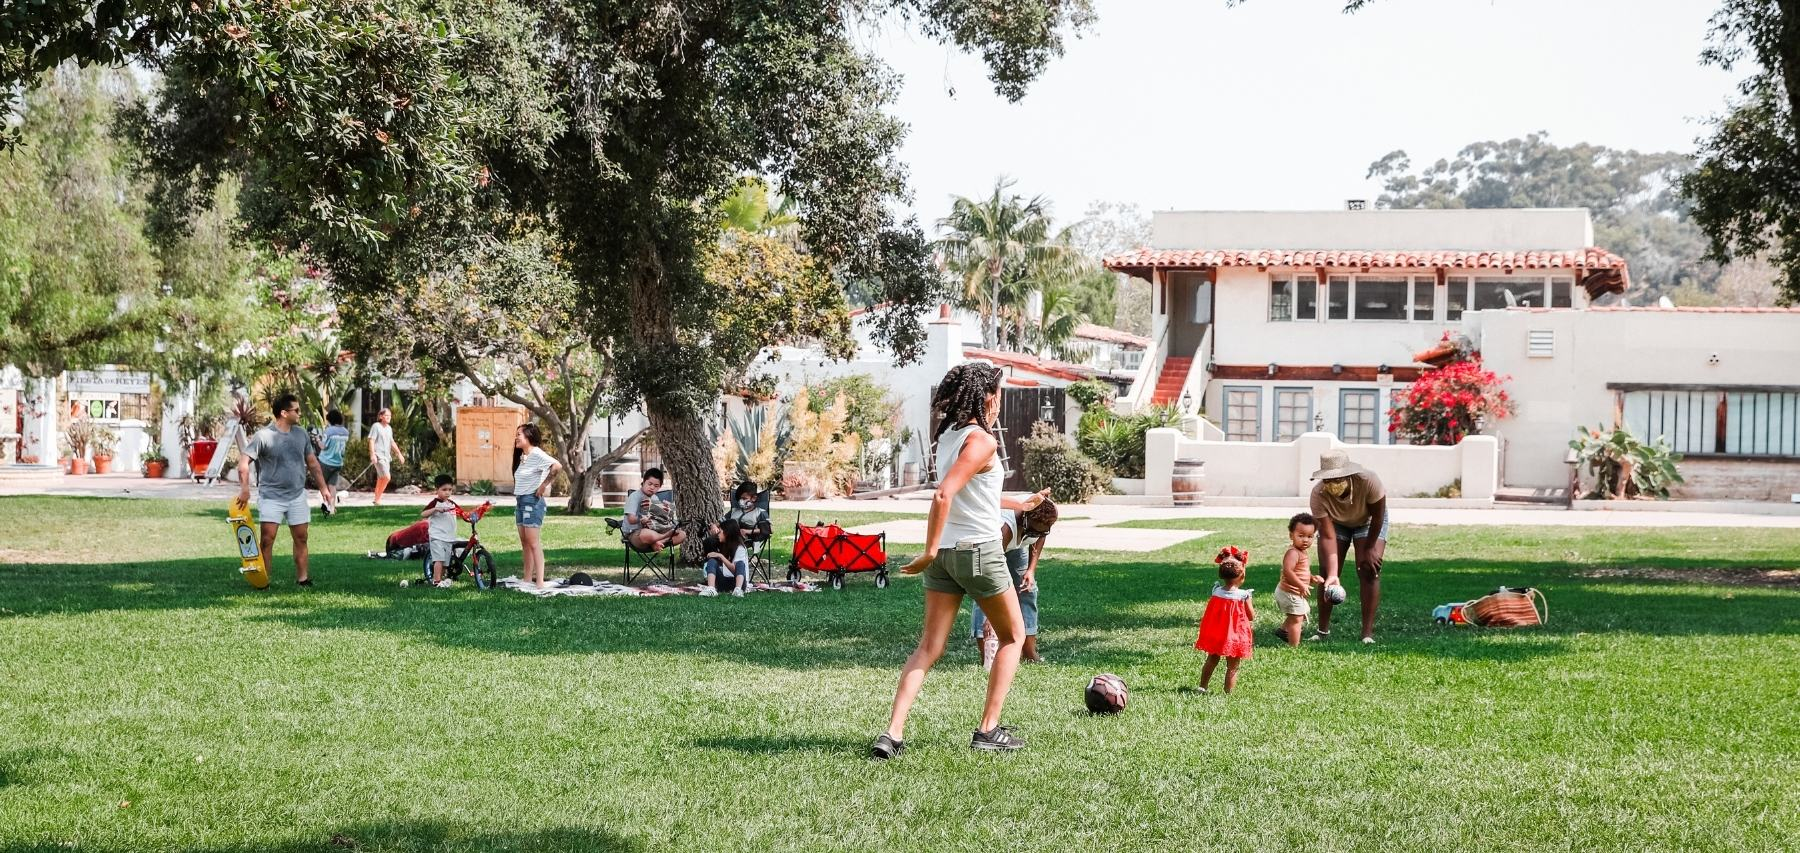 old-town-san-diego-state-historic-park